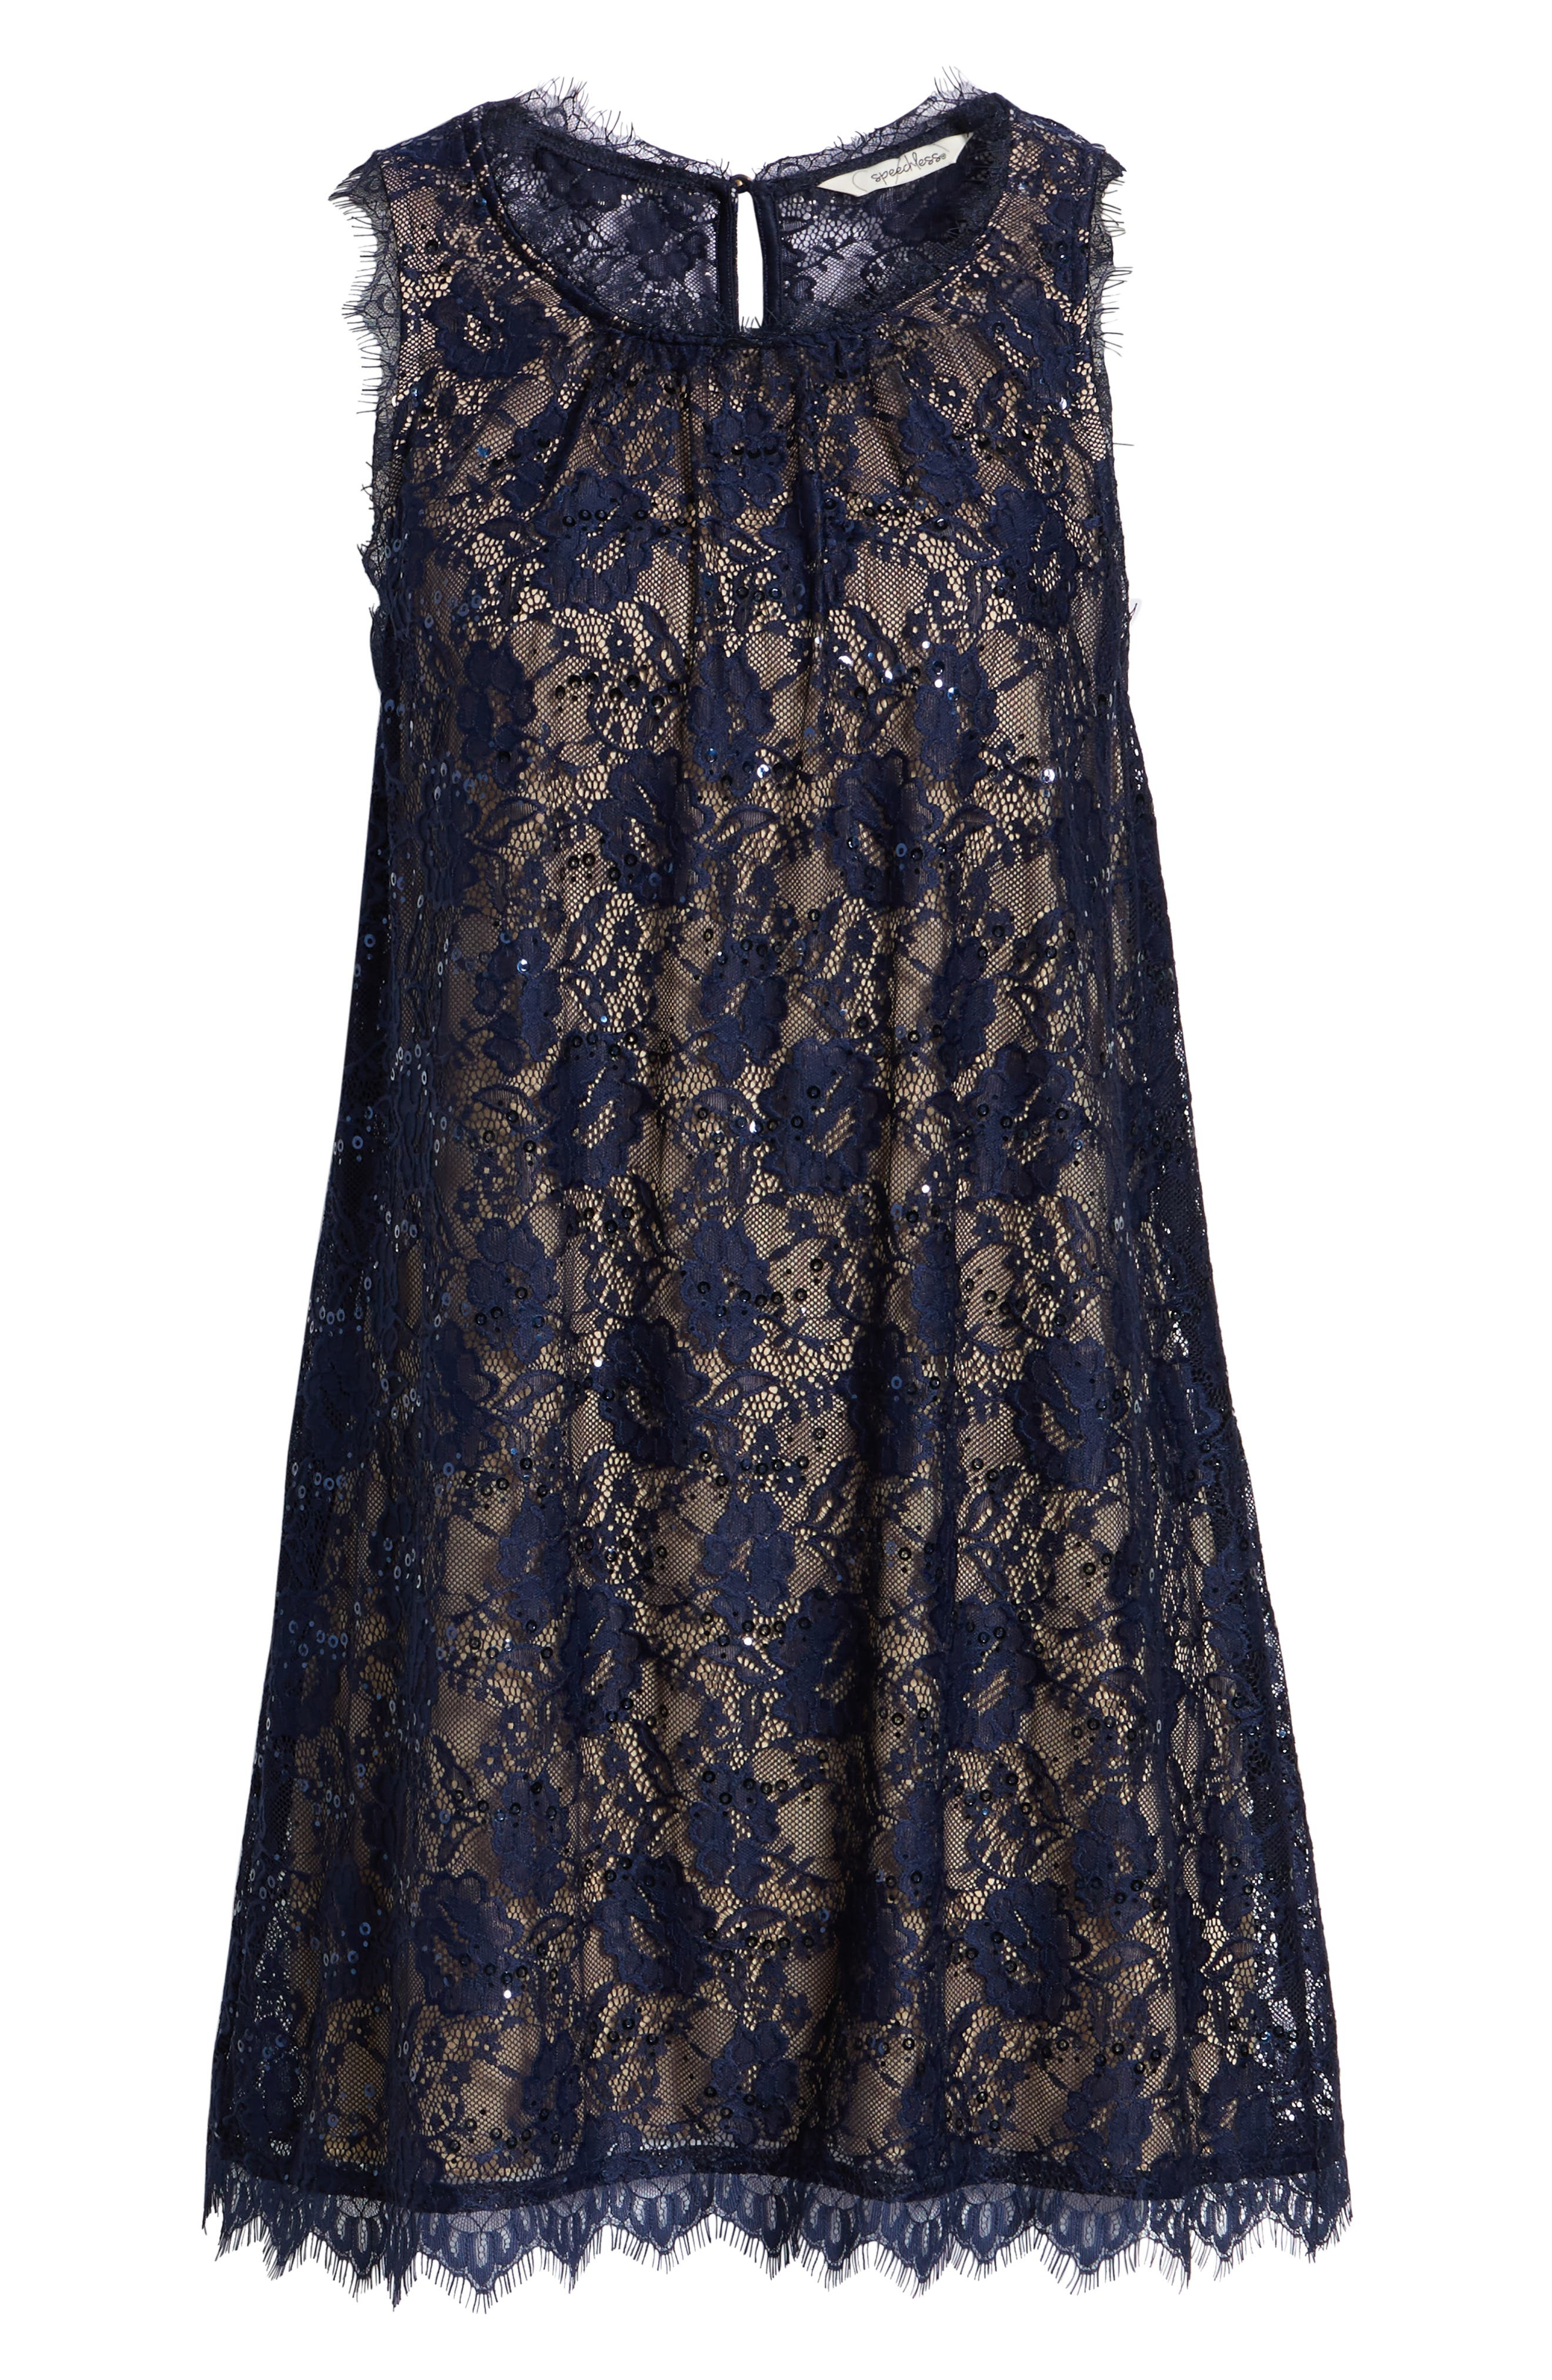 Sequin Lace Shift Dress,                             Alternate thumbnail 7, color,                             NAVY/ TAUPE